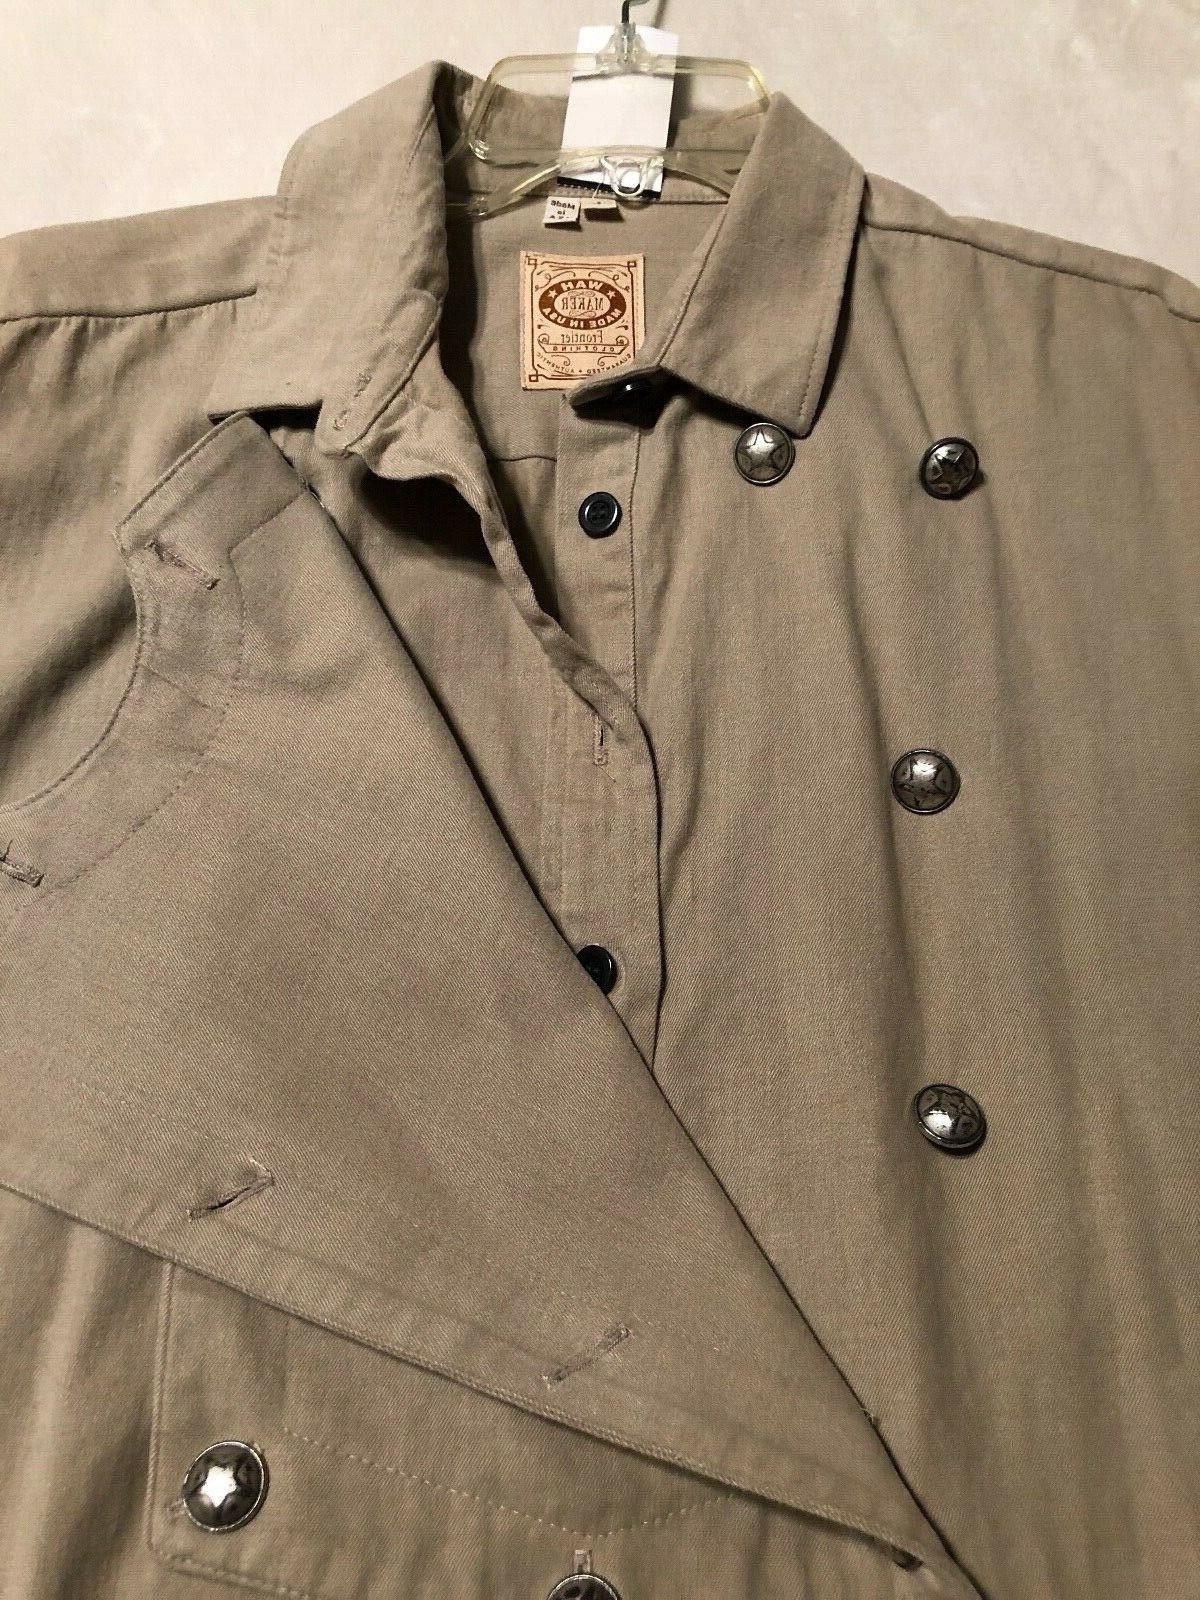 NWT Wah Frontier Clothing Shirt Size Large